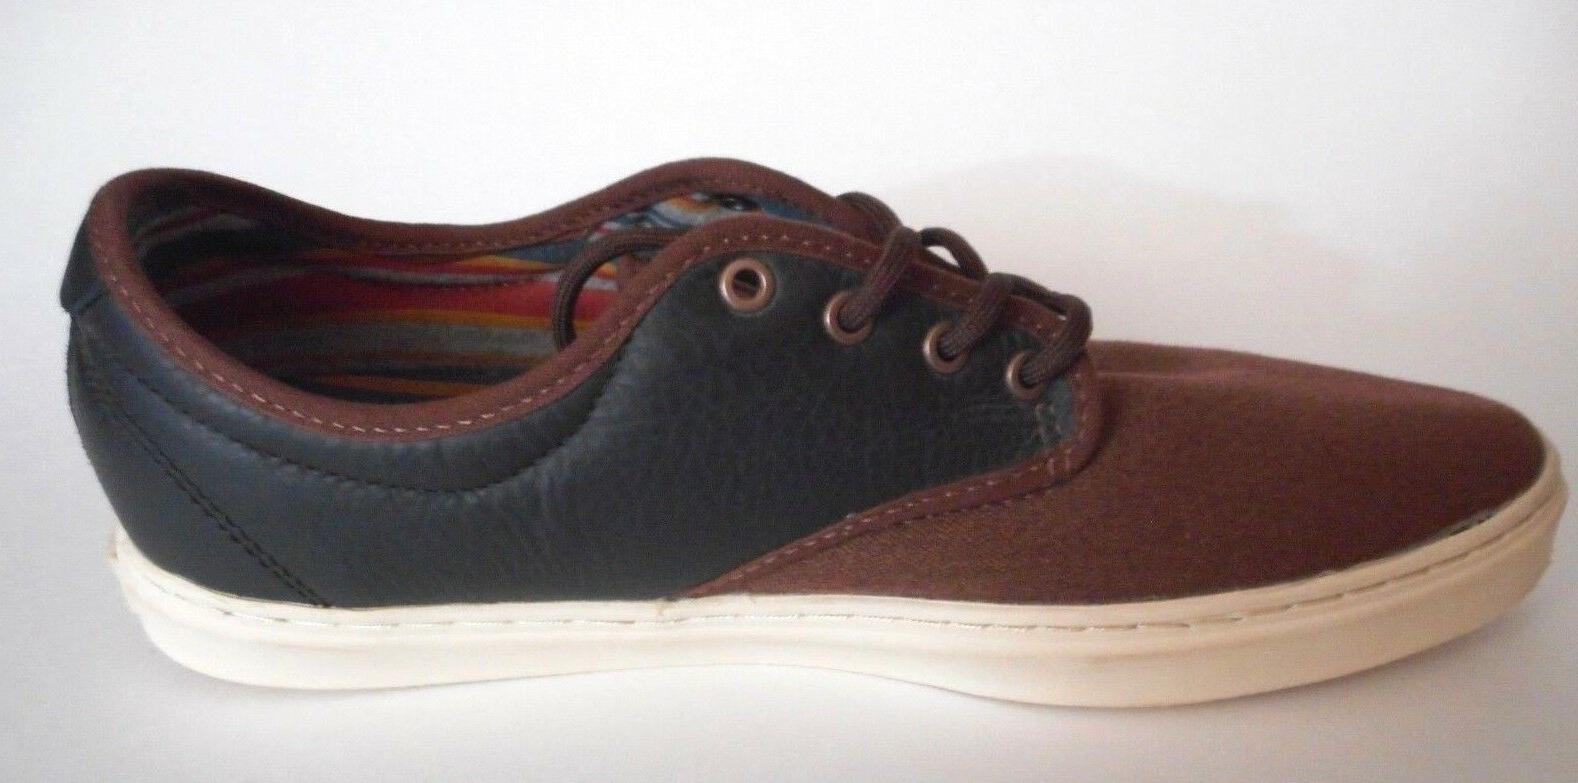 BRAND NEW 9 Low Top Skate Shoes